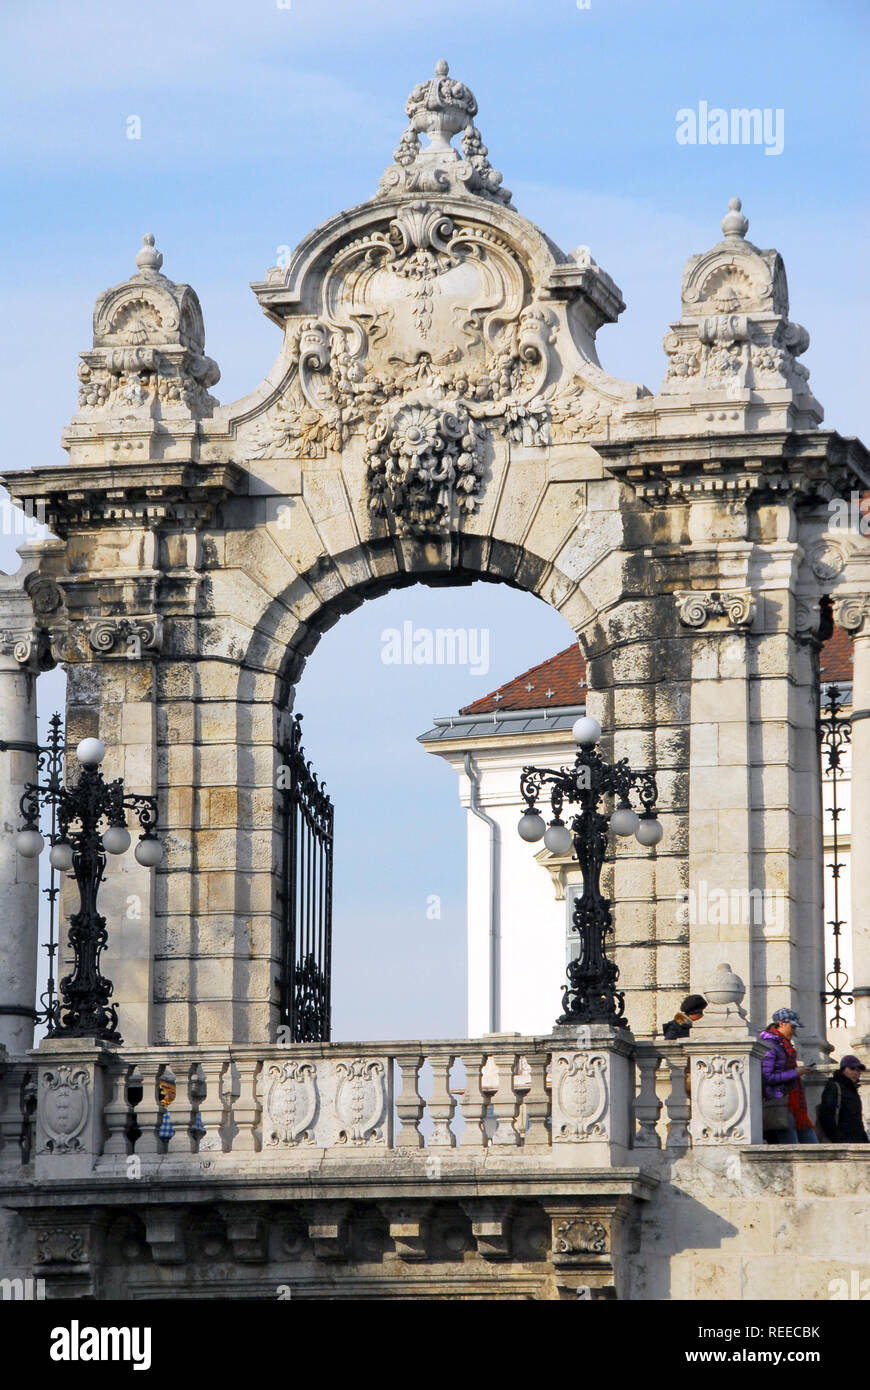 The Buda Castle is the historical castle and palace complex of the Hungarian kings in Budapest. Budavári Palota, Budai Várnegyed Stock Photo